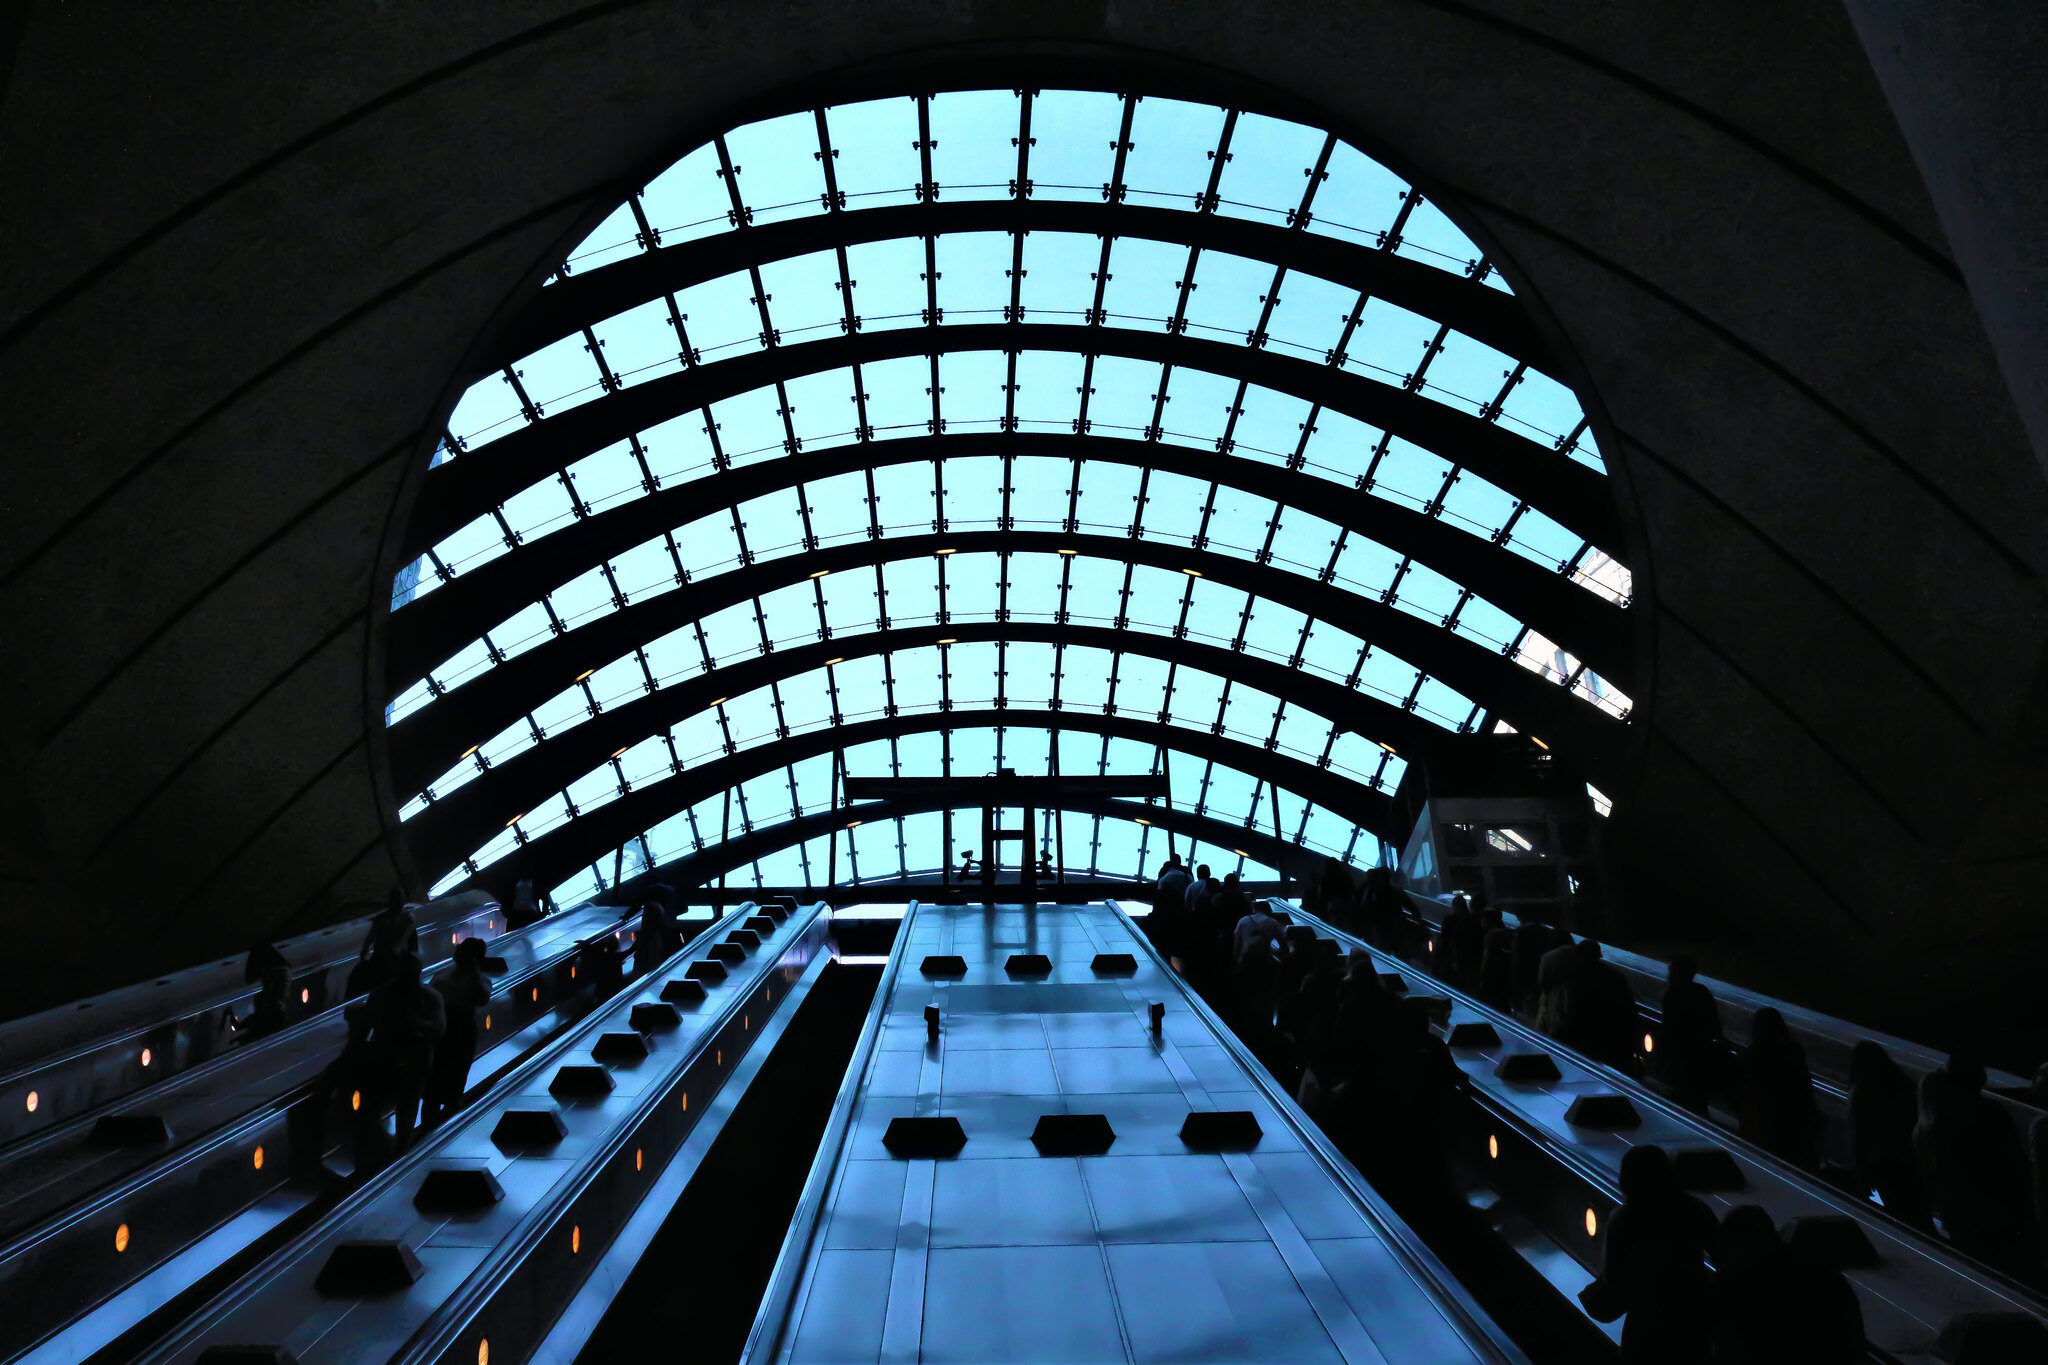 Canary Wharf Station, London, United Kingdom - The World's Most Beautiful Subway Stations